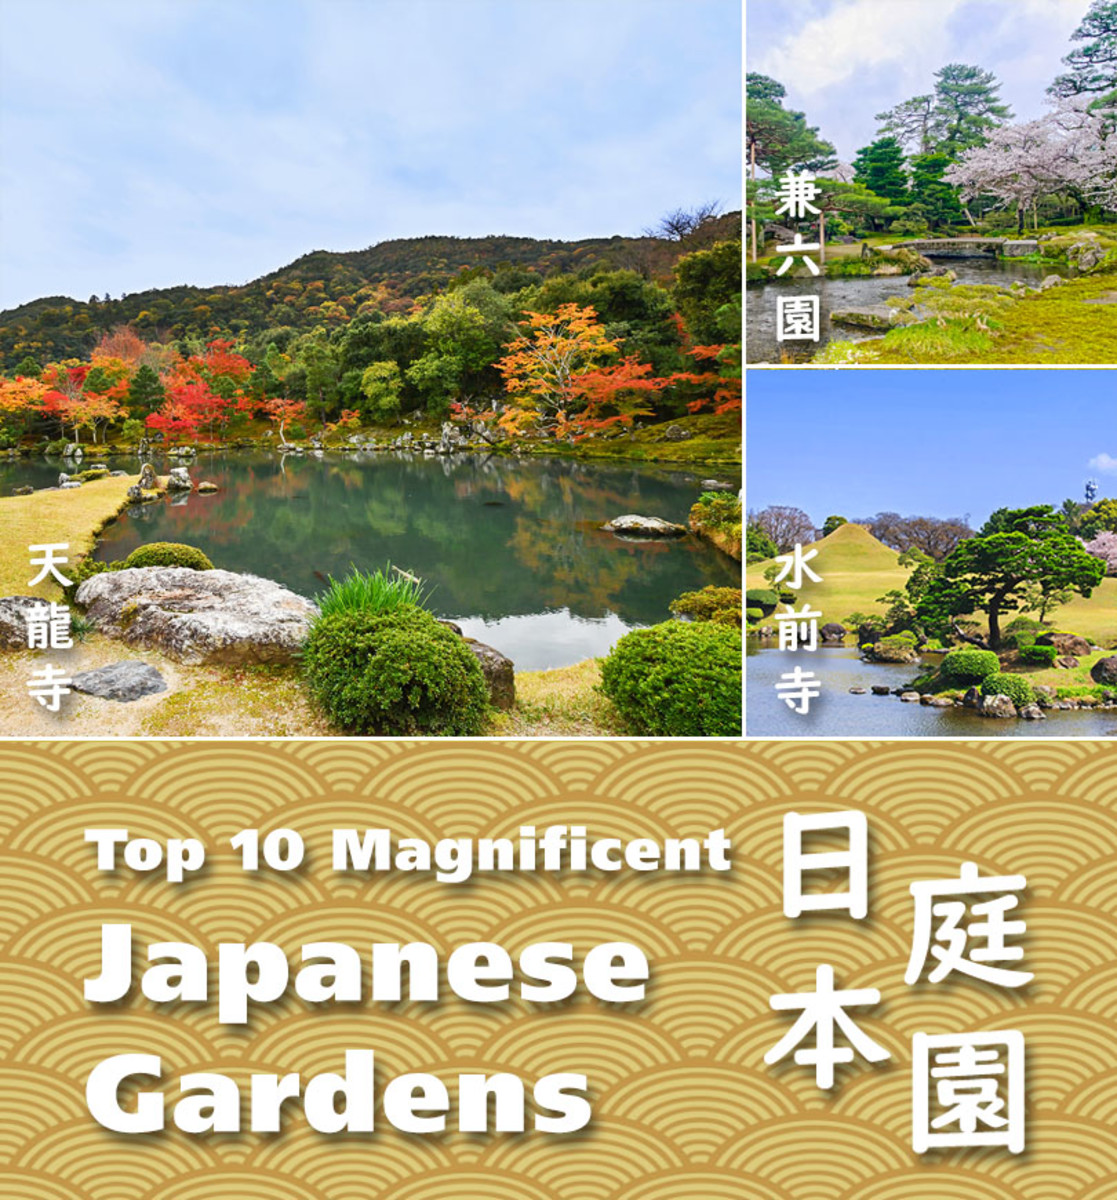 Have you been to any of these beautiful Japanese Gardens?